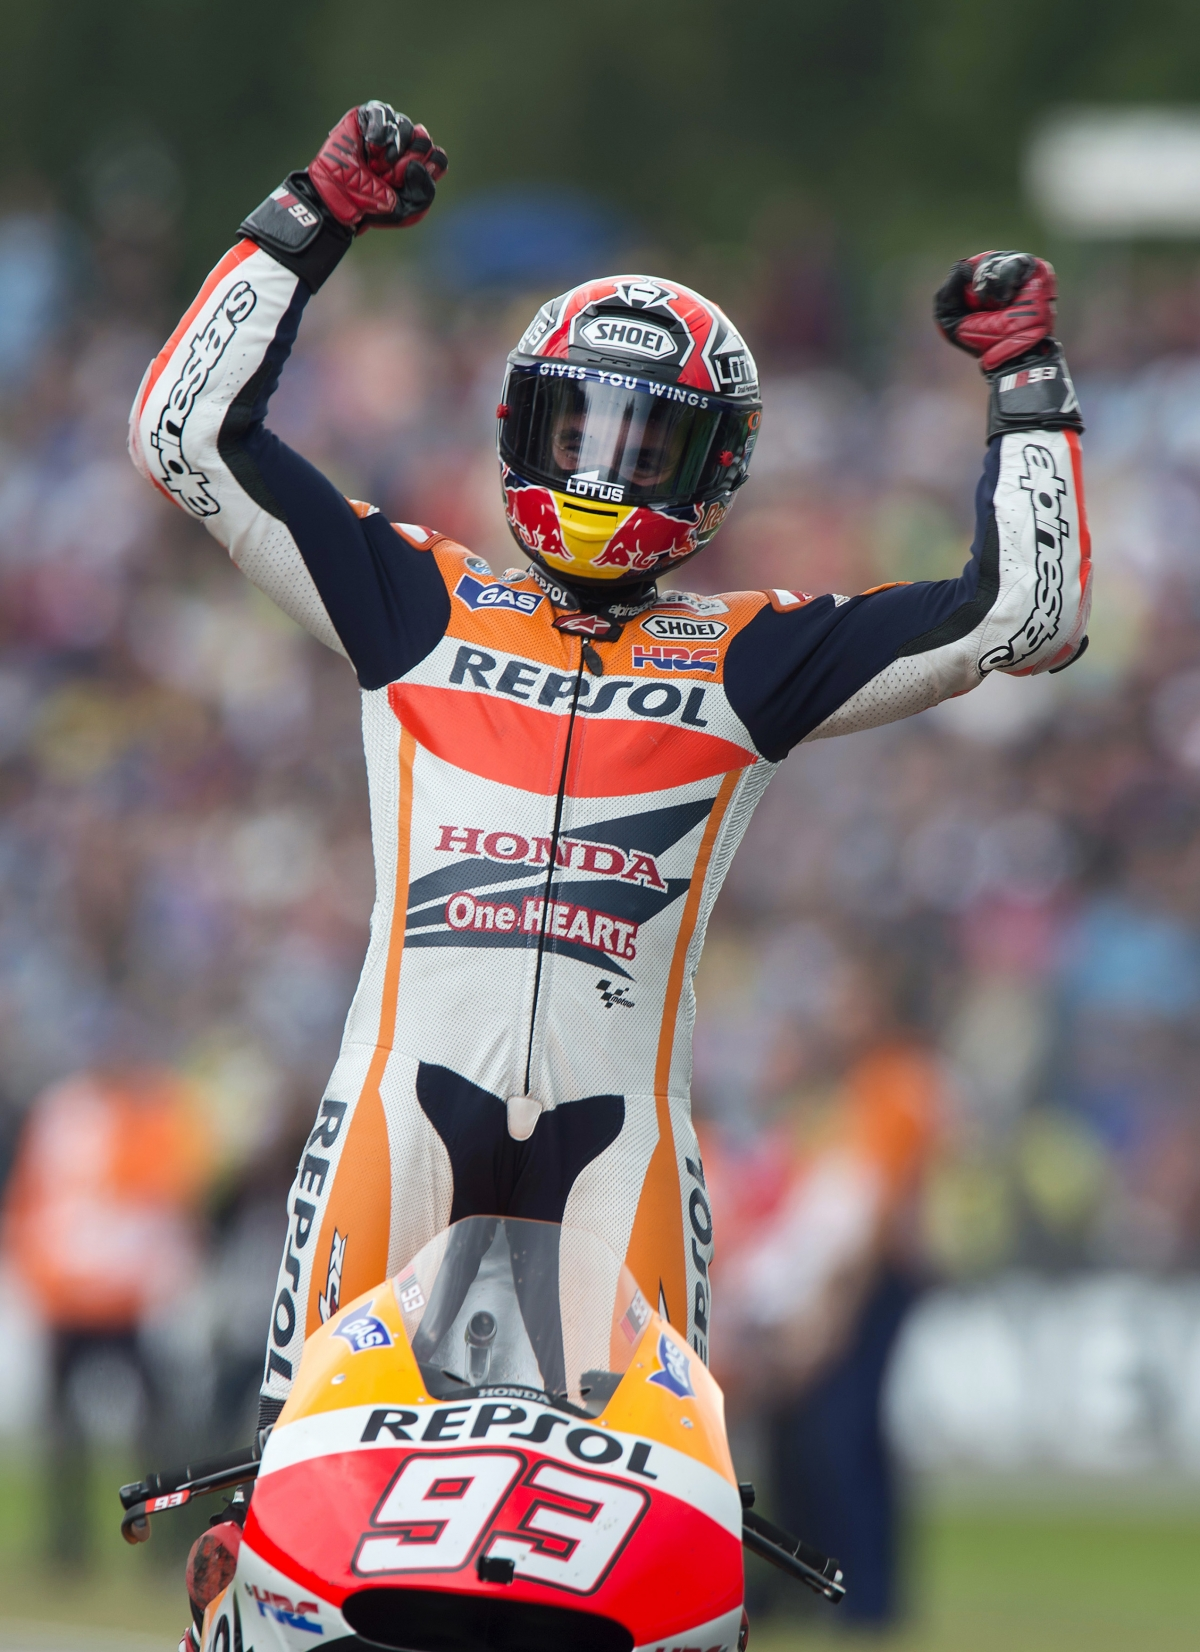 Honda MotoGP rider Marc Marquez of Spain celebrates after winning the Dutch Grand Prix in Assen June 28, 2014